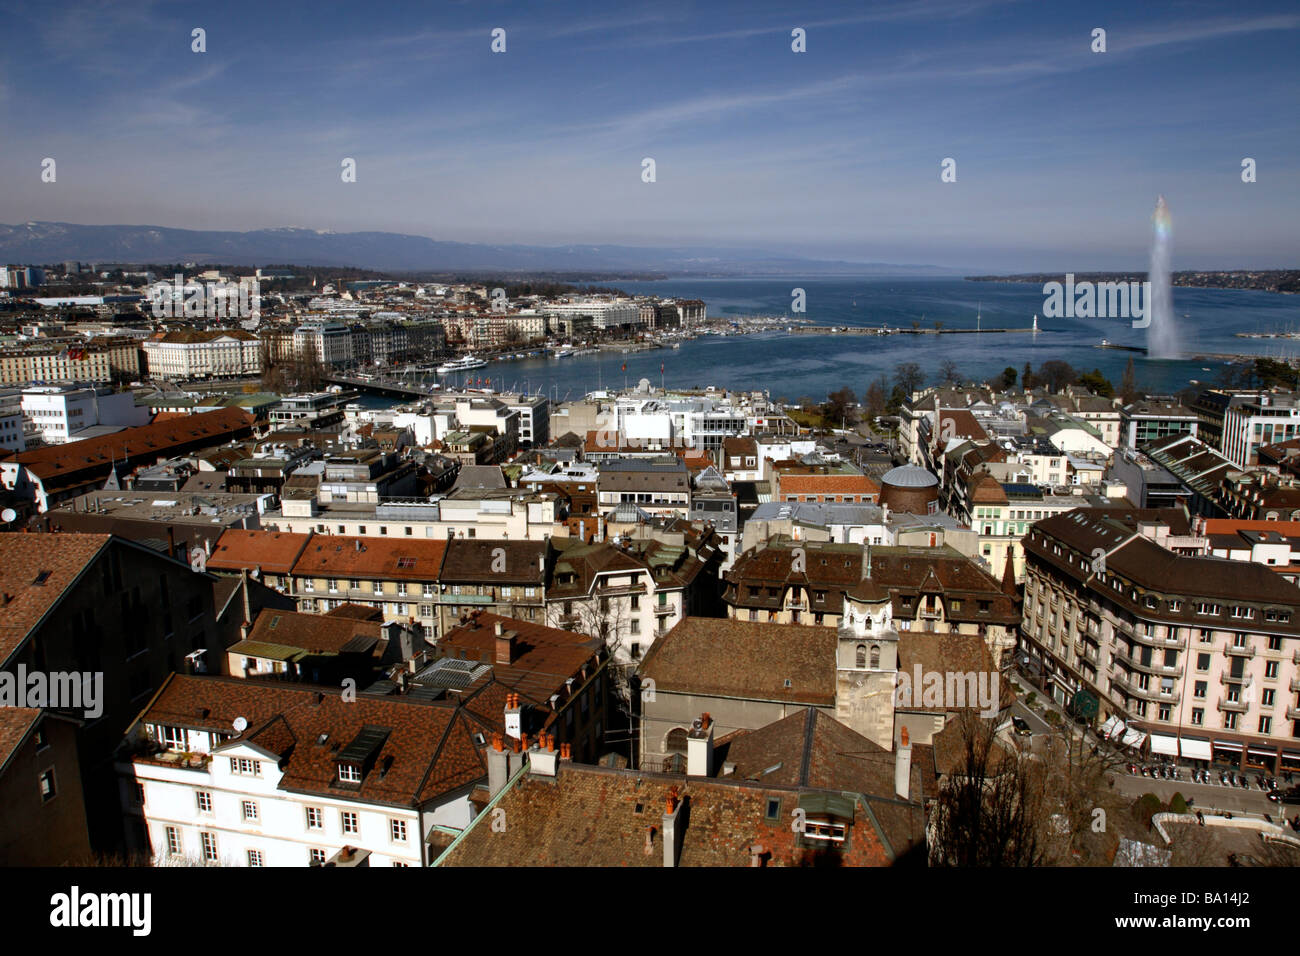 Lake Geneva (Lac Léman ) and Jet d'Eau seen from St Peter's Cathedral, Geneva, Switzerland - Stock Image